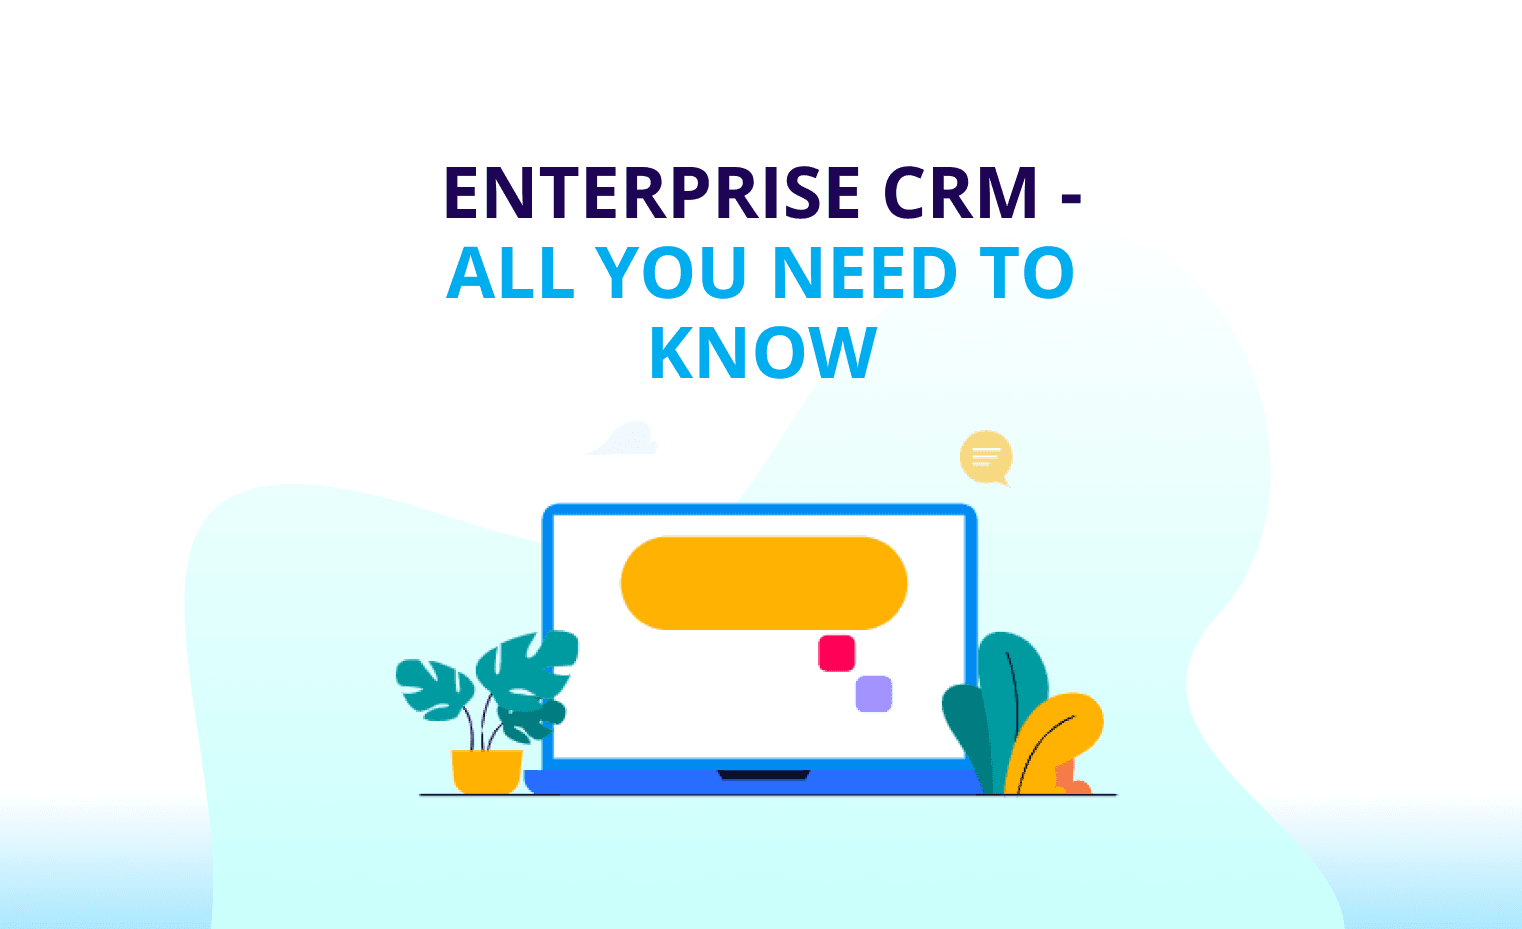 Enterprise CRM - All You Need To Know